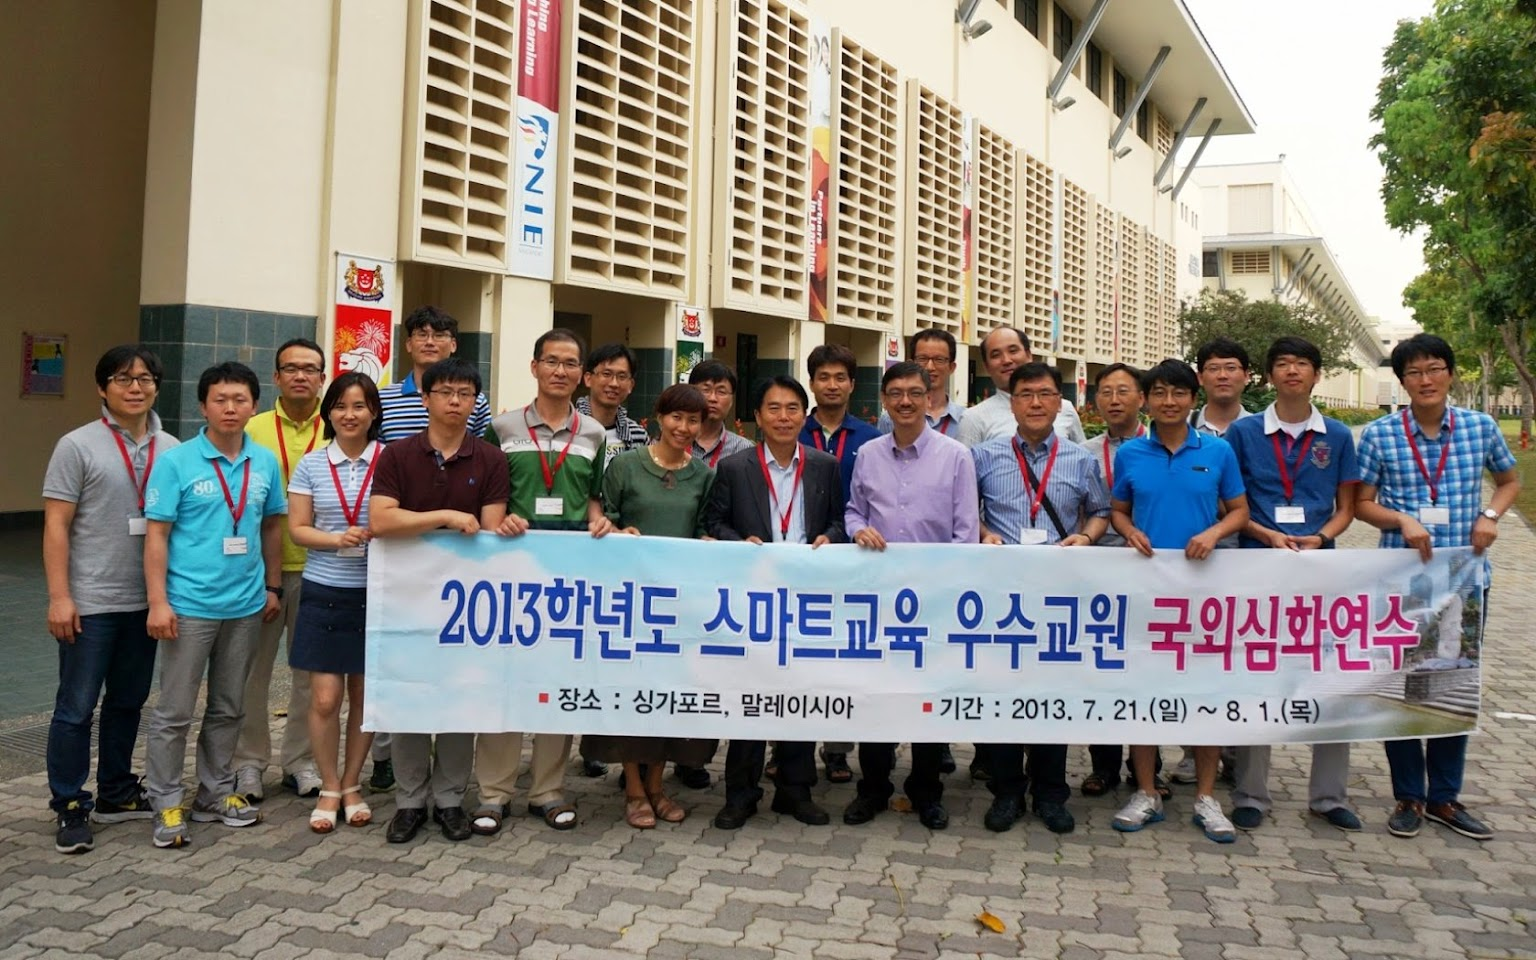 Korean educators attended my week-long workshop on game-based learning.